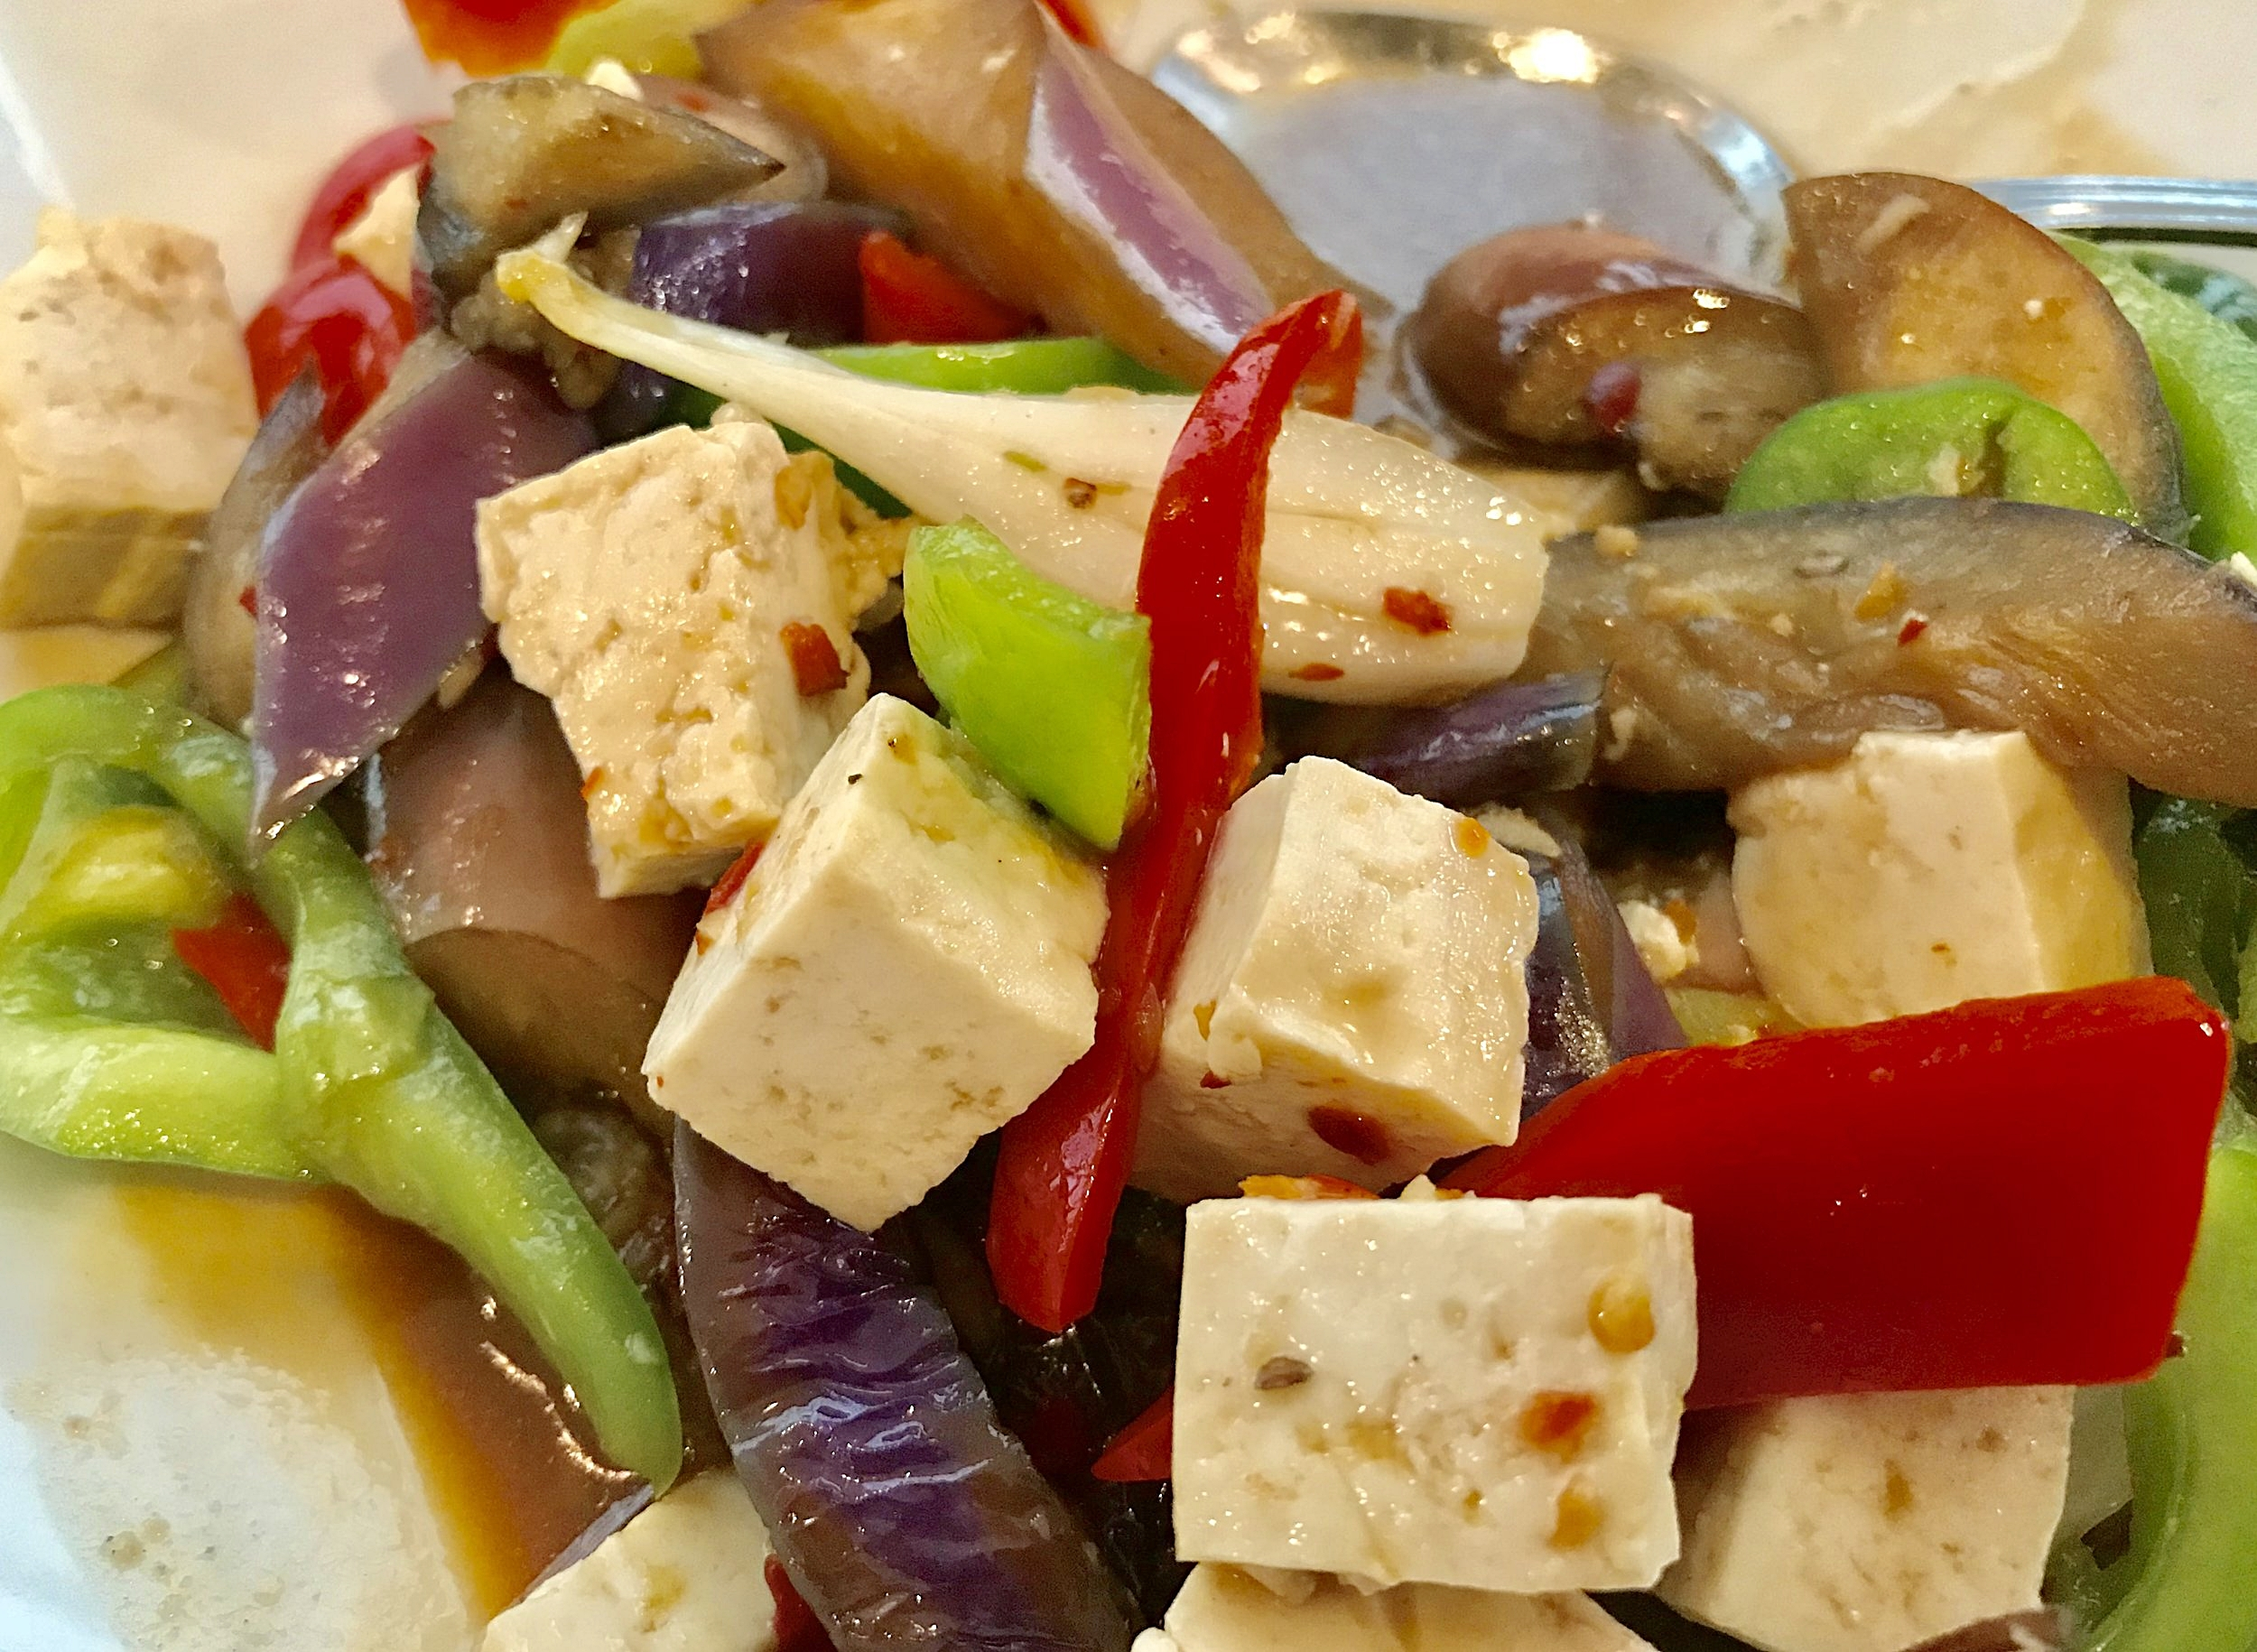 I love the Spicy Egg-Plant with tofu @ThaiDishes on Manchester Ave in Westchester. #Foodie